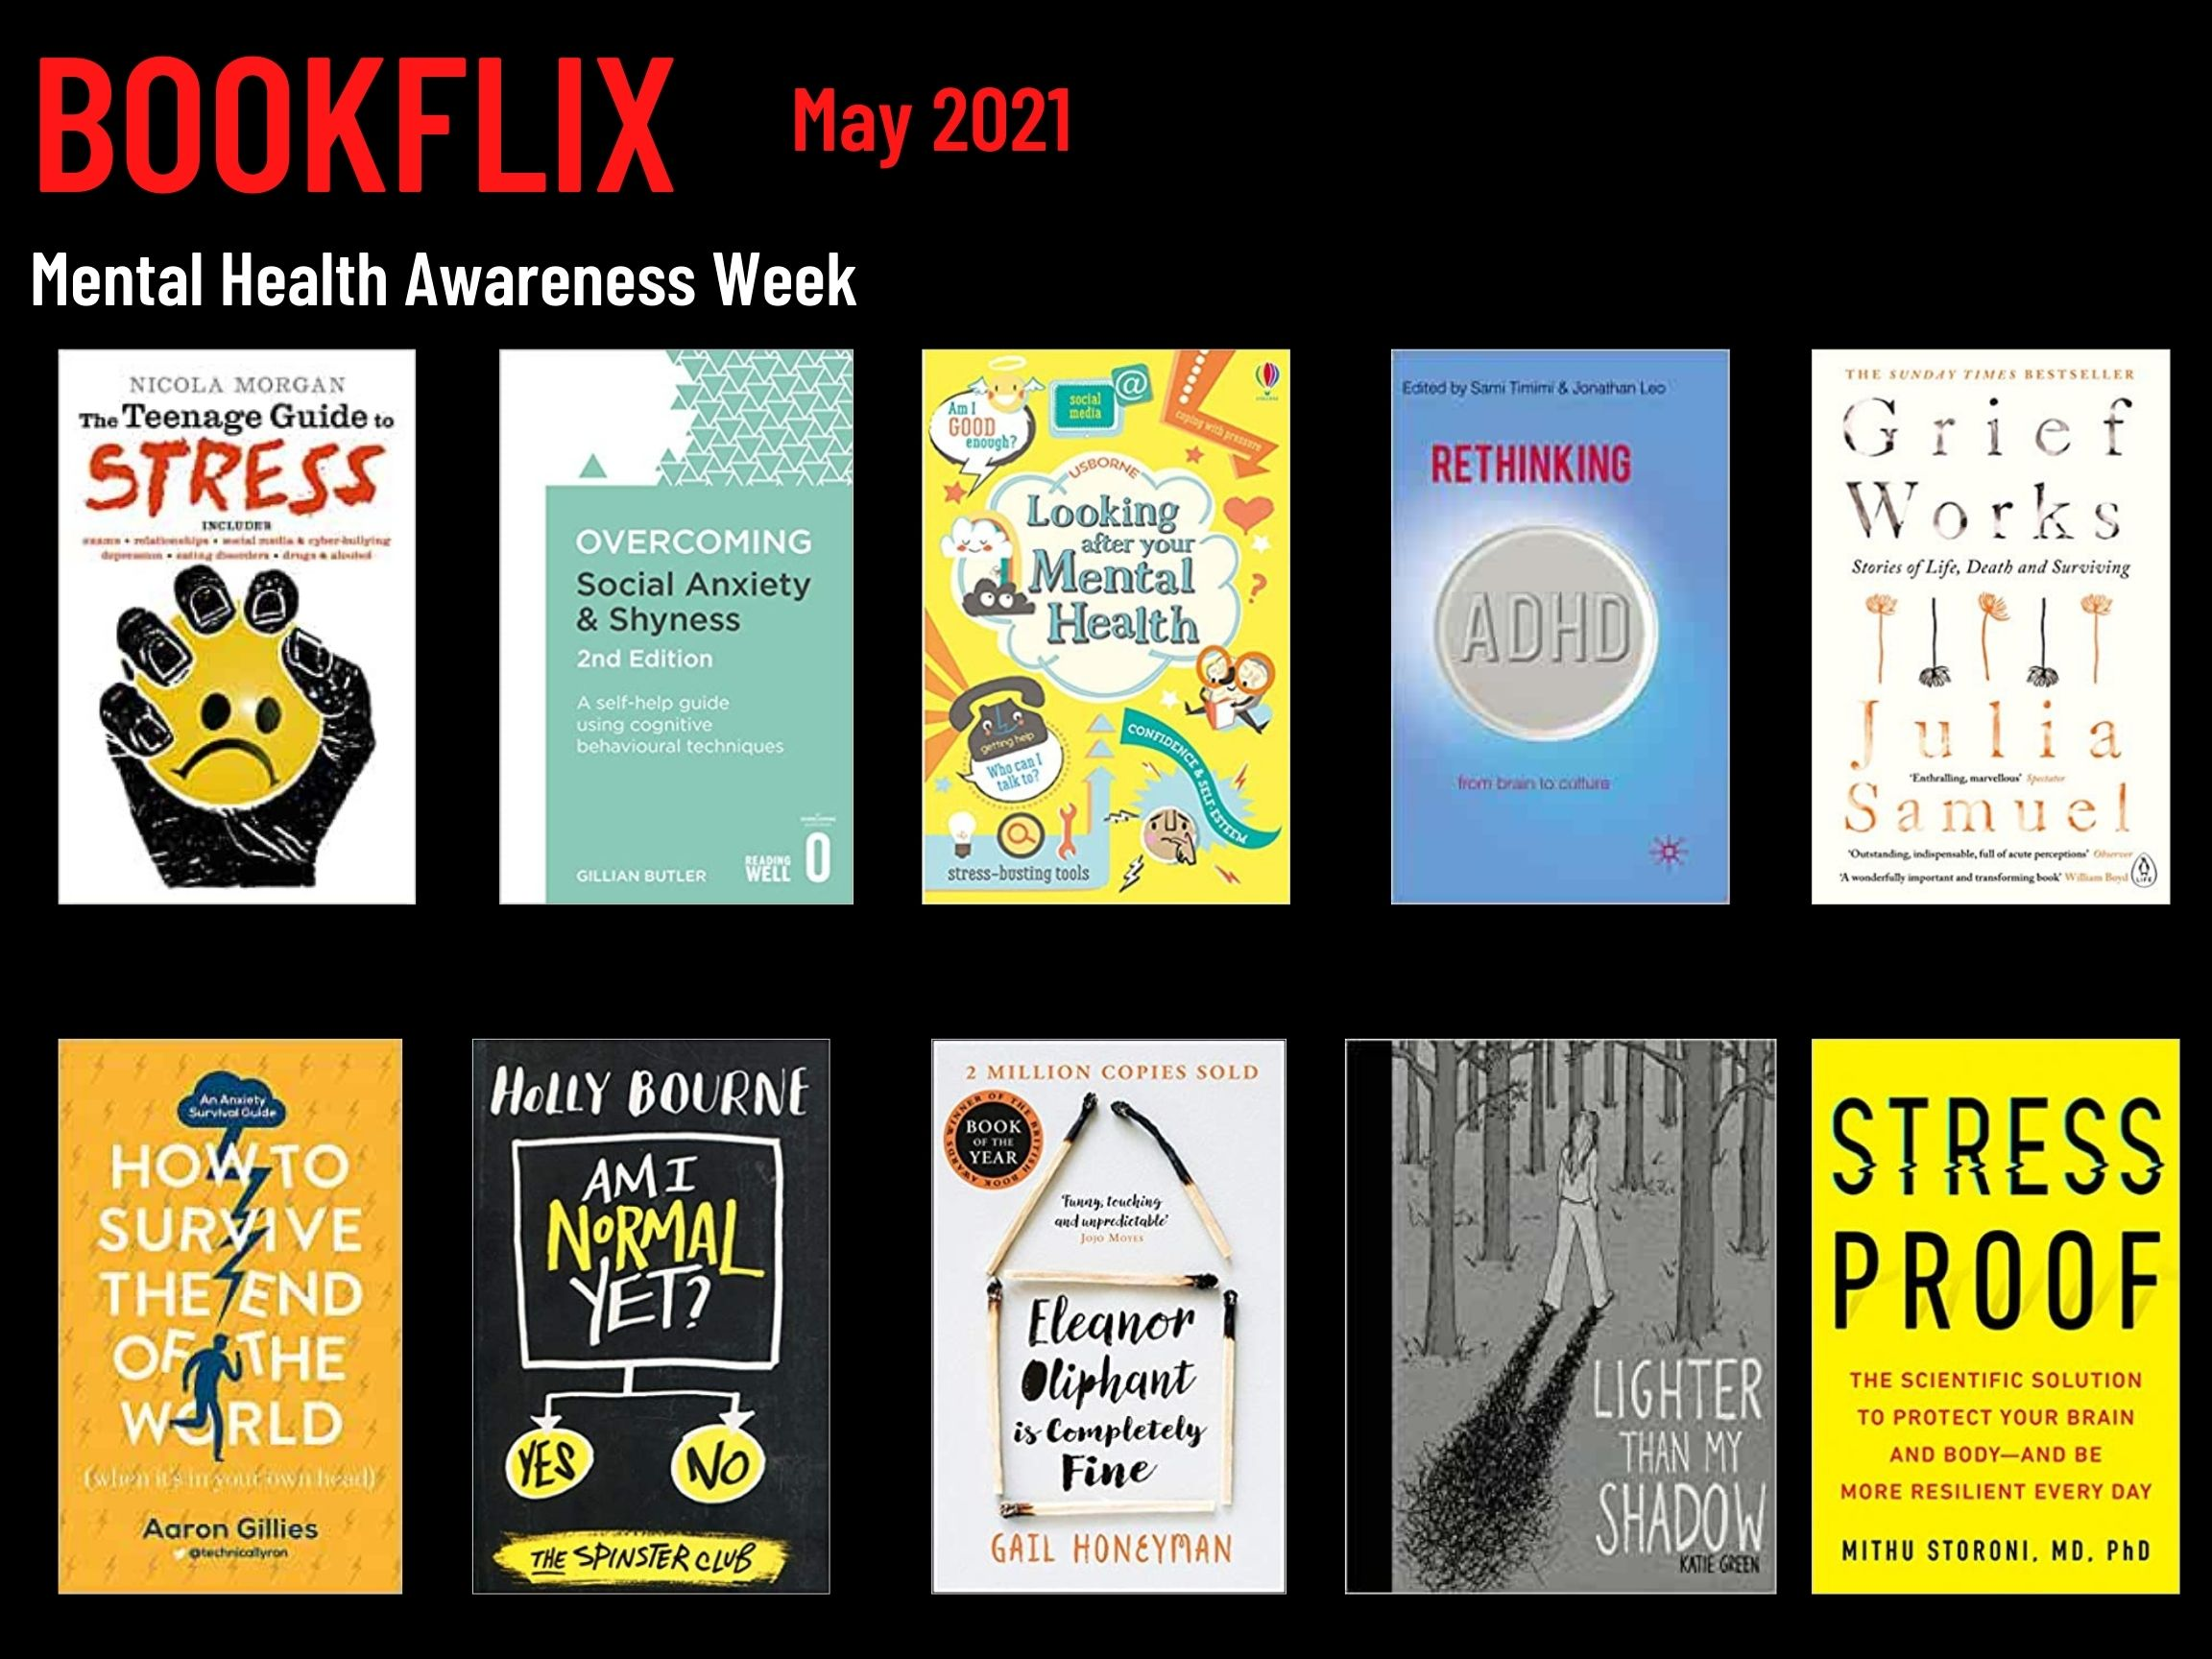 Bookflix page two. Text reads: Bookflix -May 2021. The page has 10 images of book/dvd covers. These are all listed in order in the body text below the images.